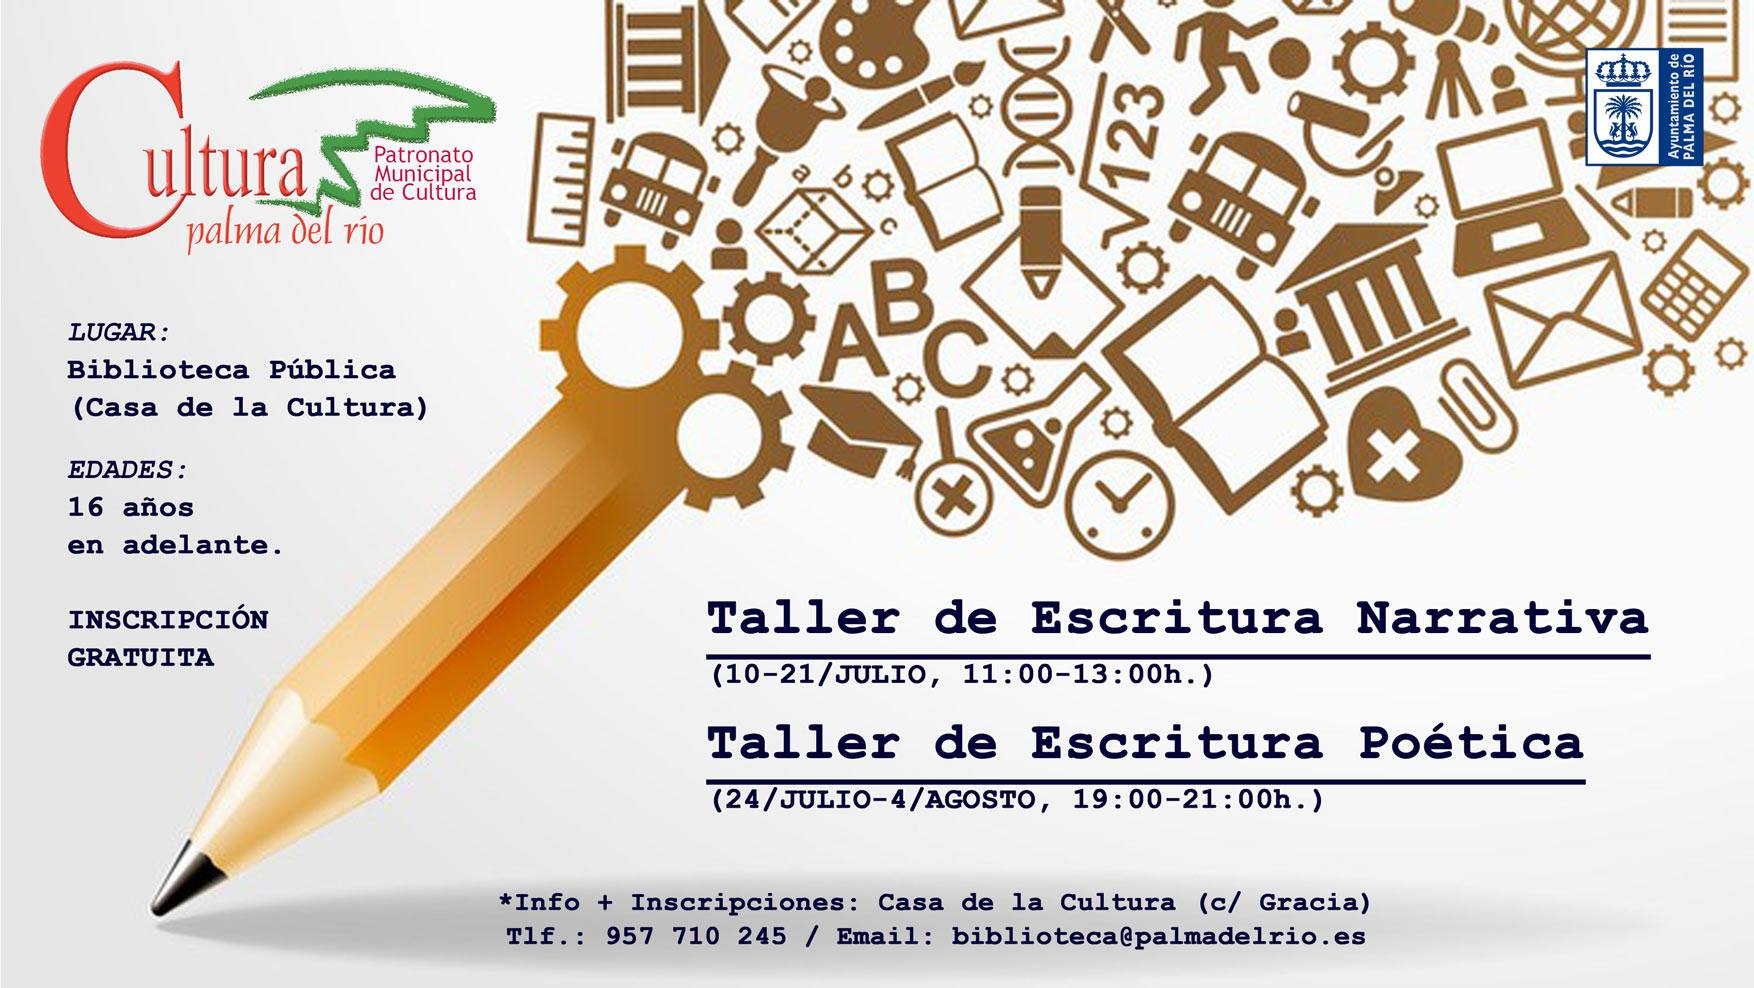 https://www.palmadelrio.es/sites/default/files/taller_escritura.jpg